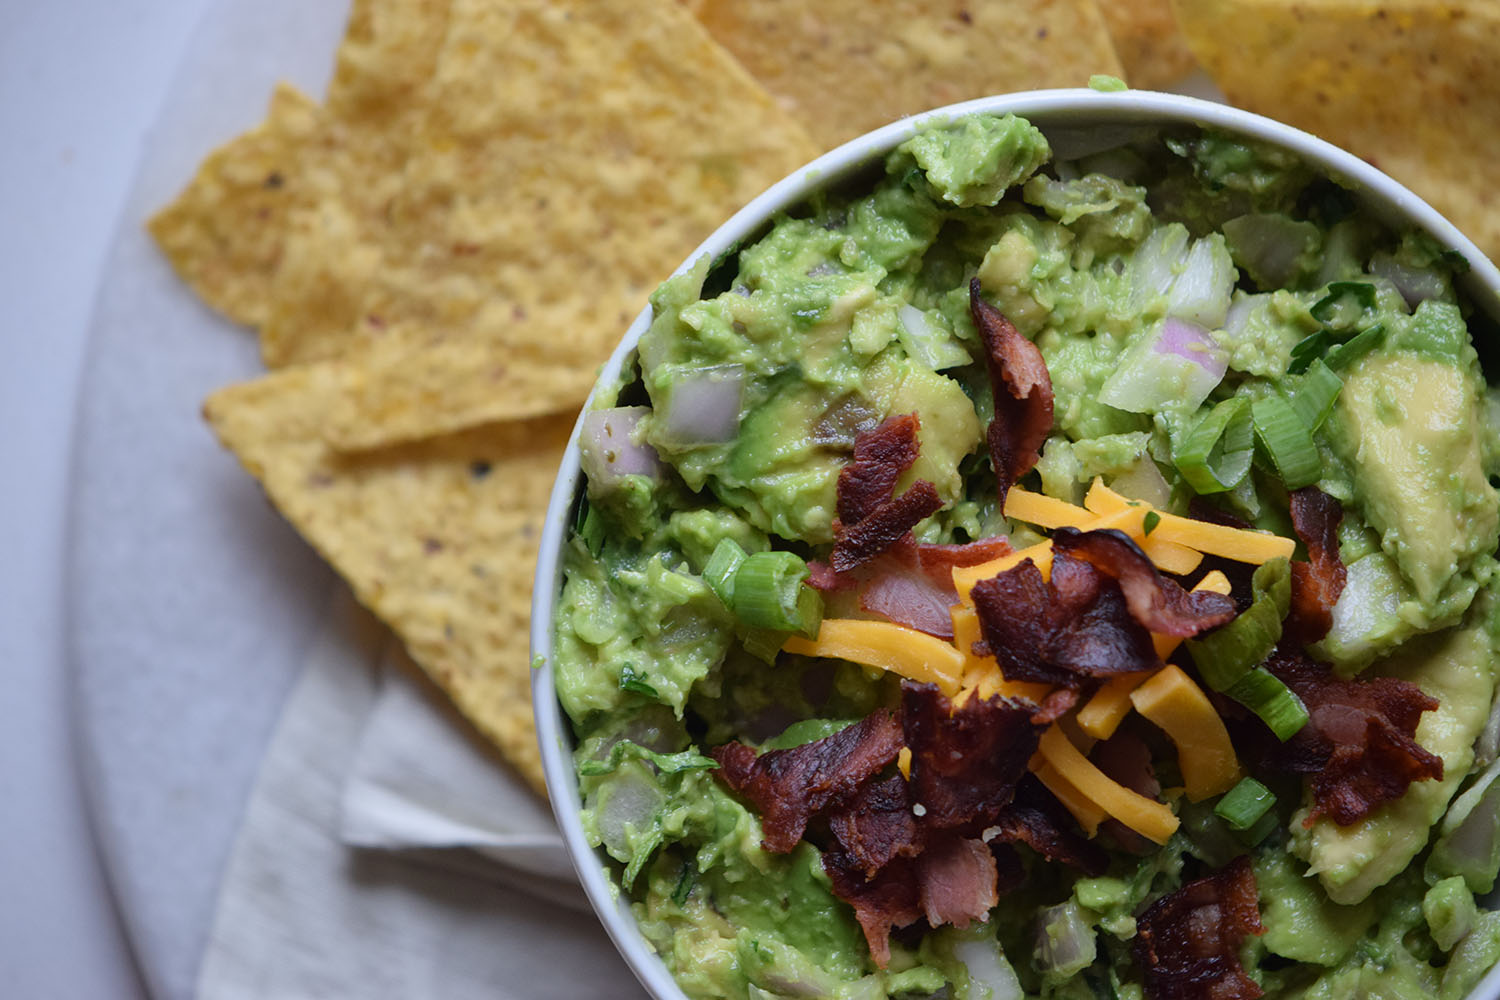 Cheddar Bacon Guacamole Recipe